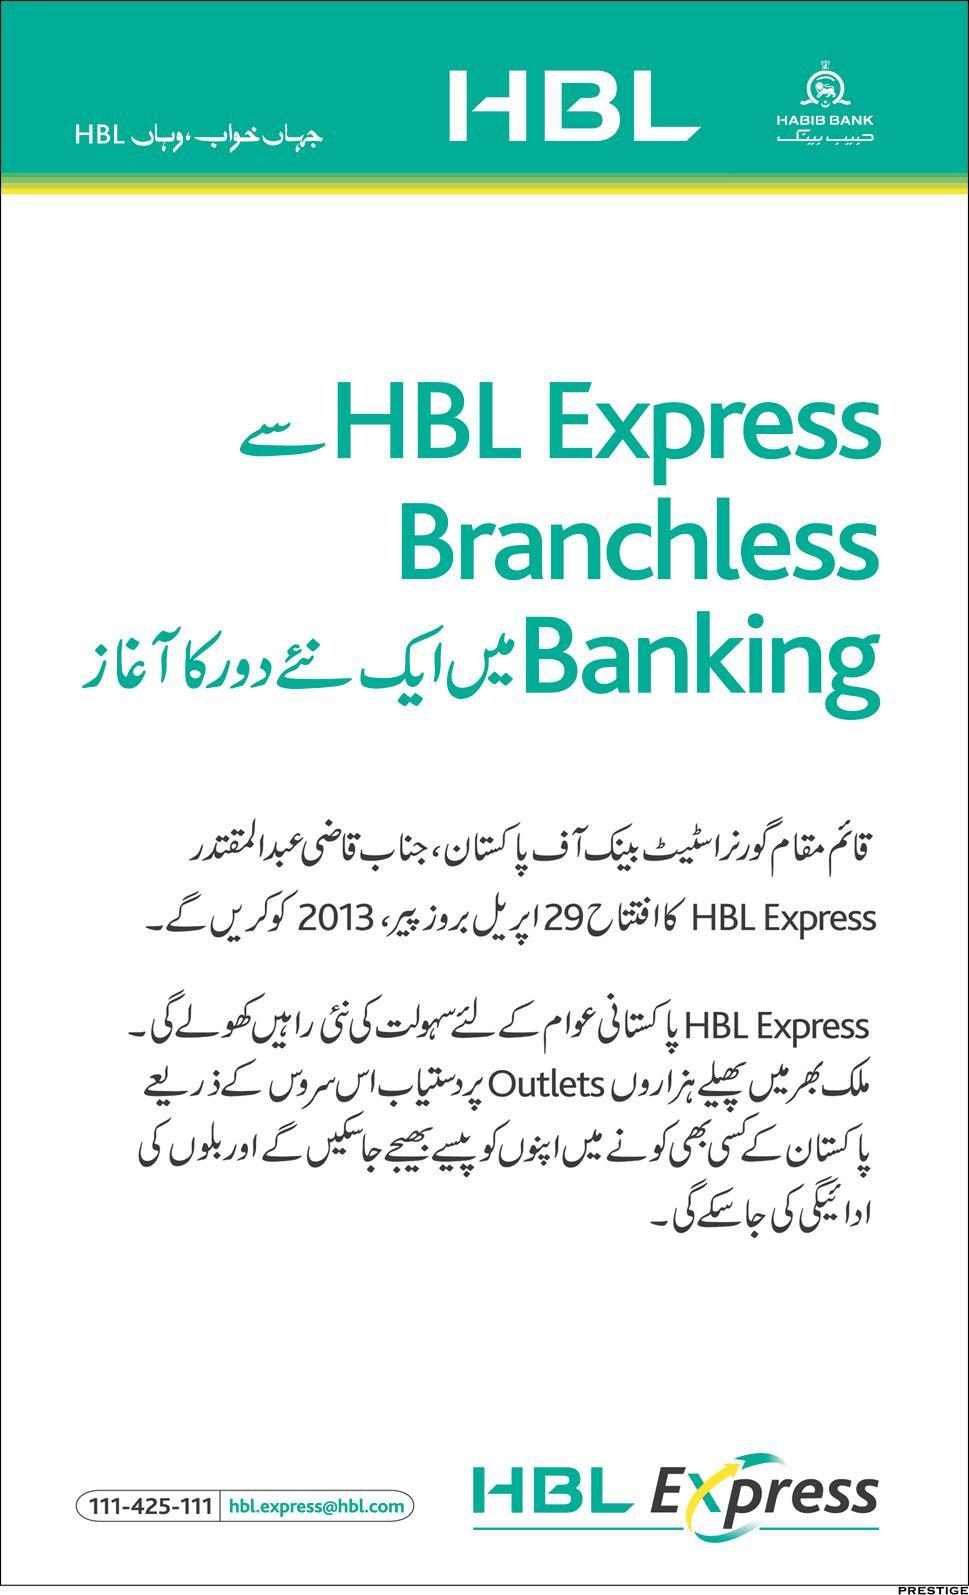 HBL Bank Brings Express Branchless Banking in Pakistan